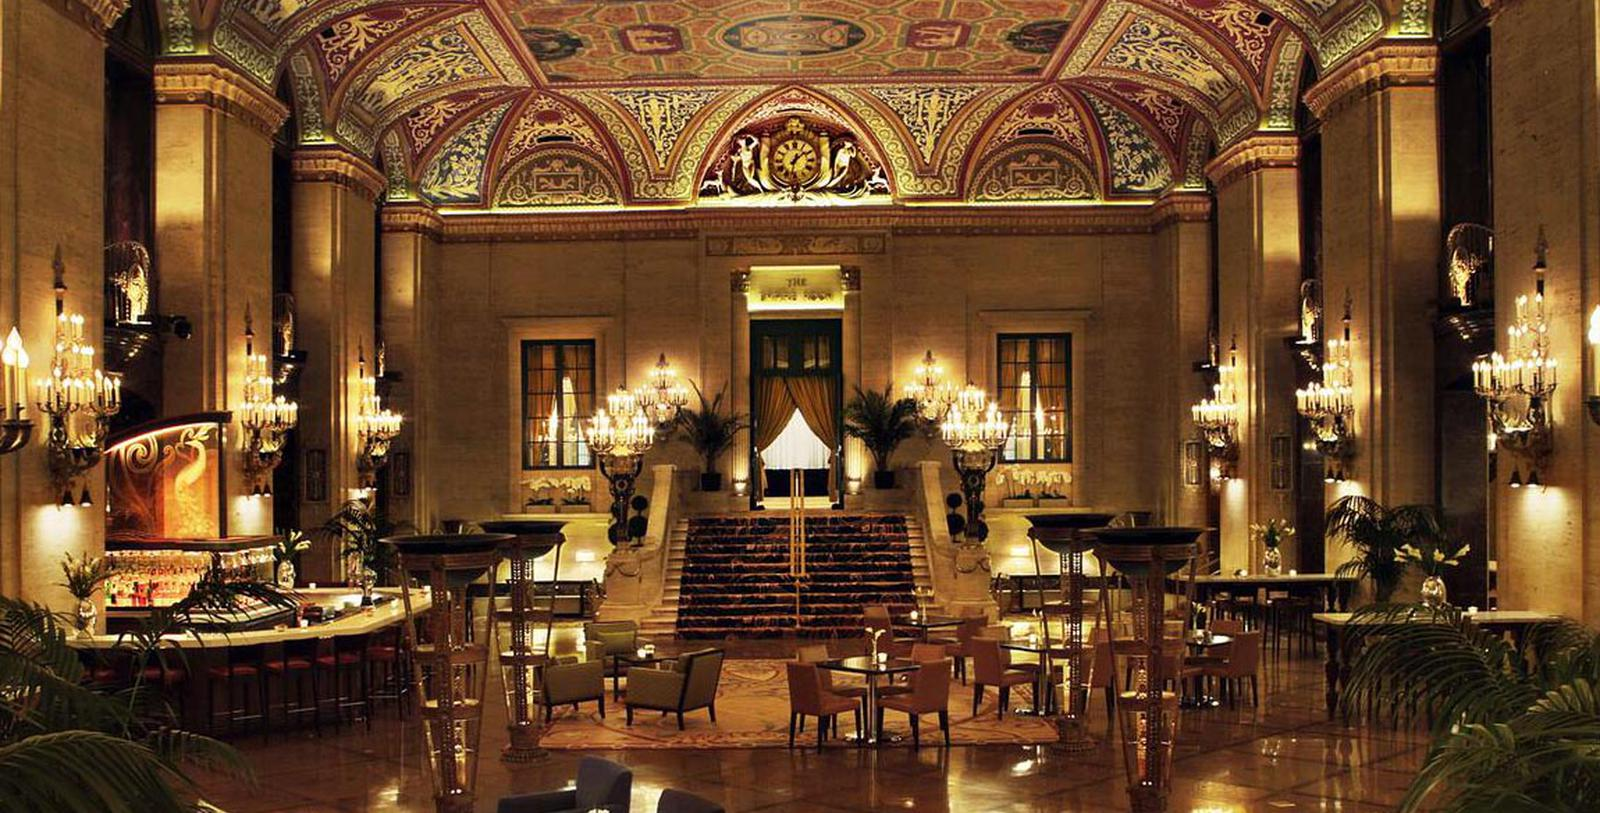 Image of Dining Area in Palmer House, A Hilton Hotel, Member of Historic Hotels of America, in Chicago, Illinois, Overview